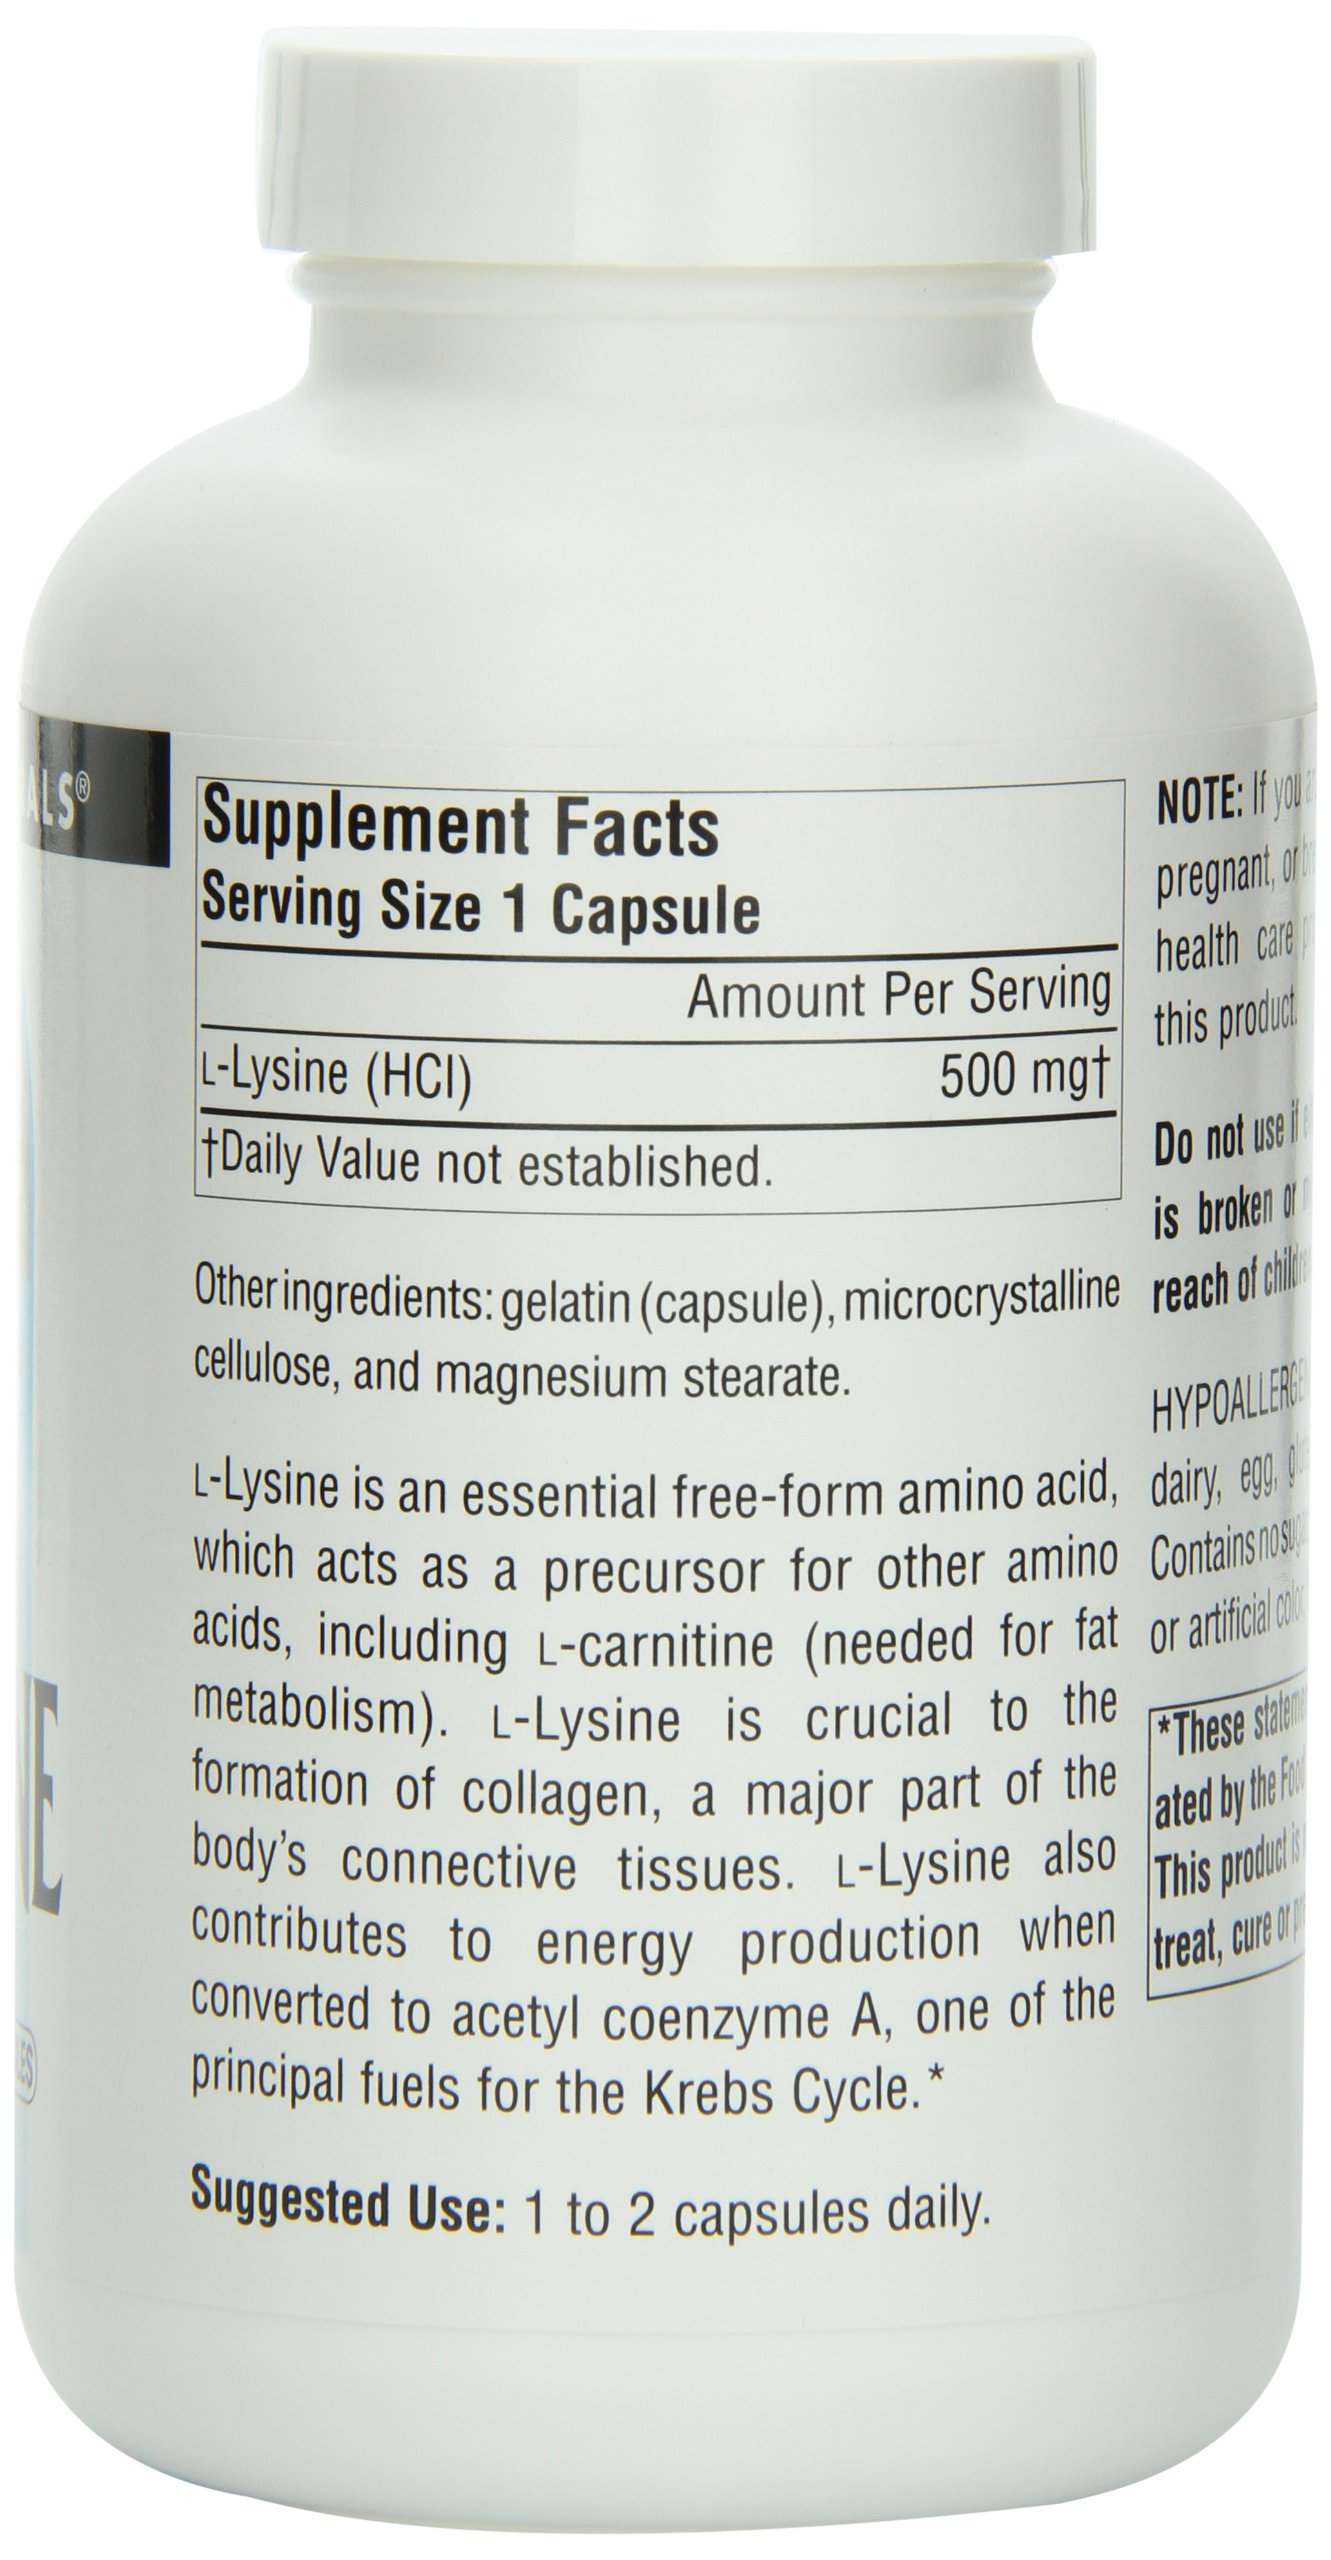 Source Naturals L-Lysine 500mg Free Form Essential Amino Acid Supplement - 200 Capsules by Source Naturals